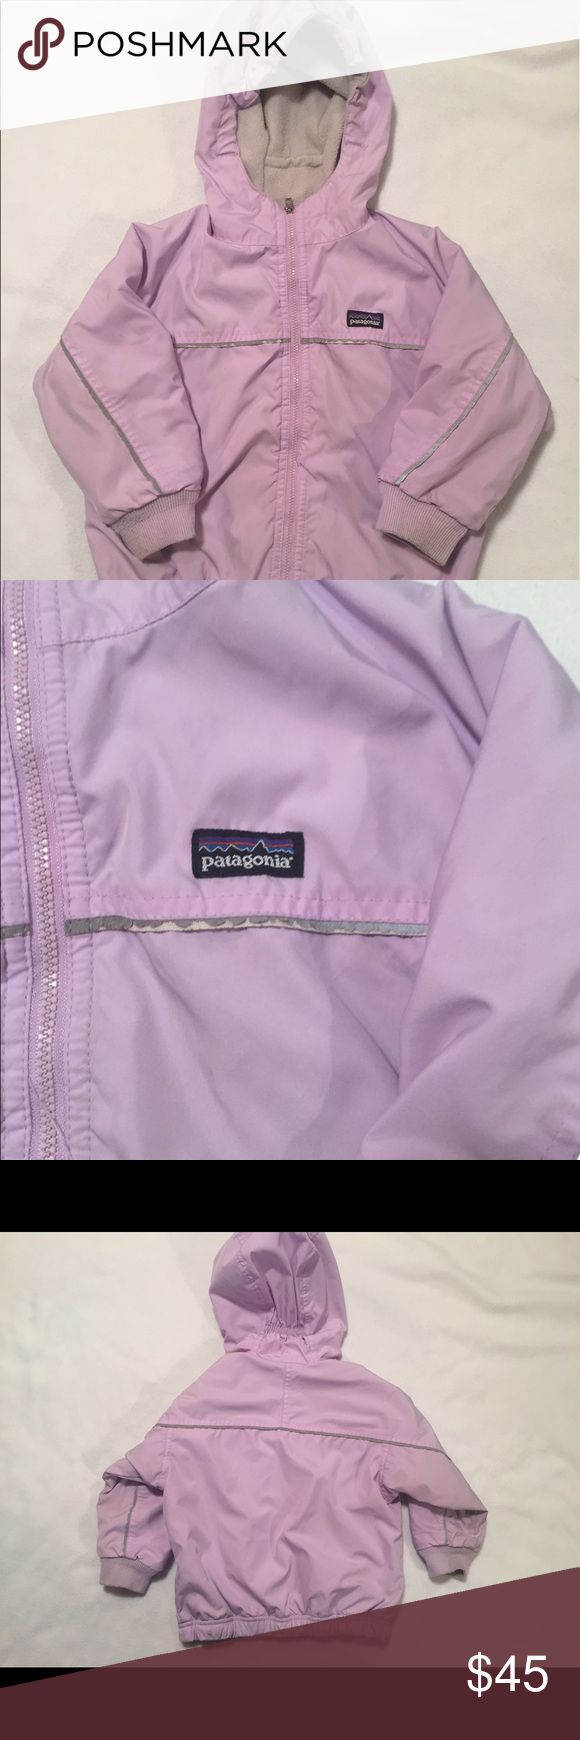 Patagonia Toddler Girls Snow Jacket, Size 24 mo Lavender outer shell with grey fleece lining. Midweight Jacket. Machine washable polyester. Good used condition with the only visible sign of wear being on reflective trim. Girls size 24T. 🍩 Patagonia Jackets & Coats